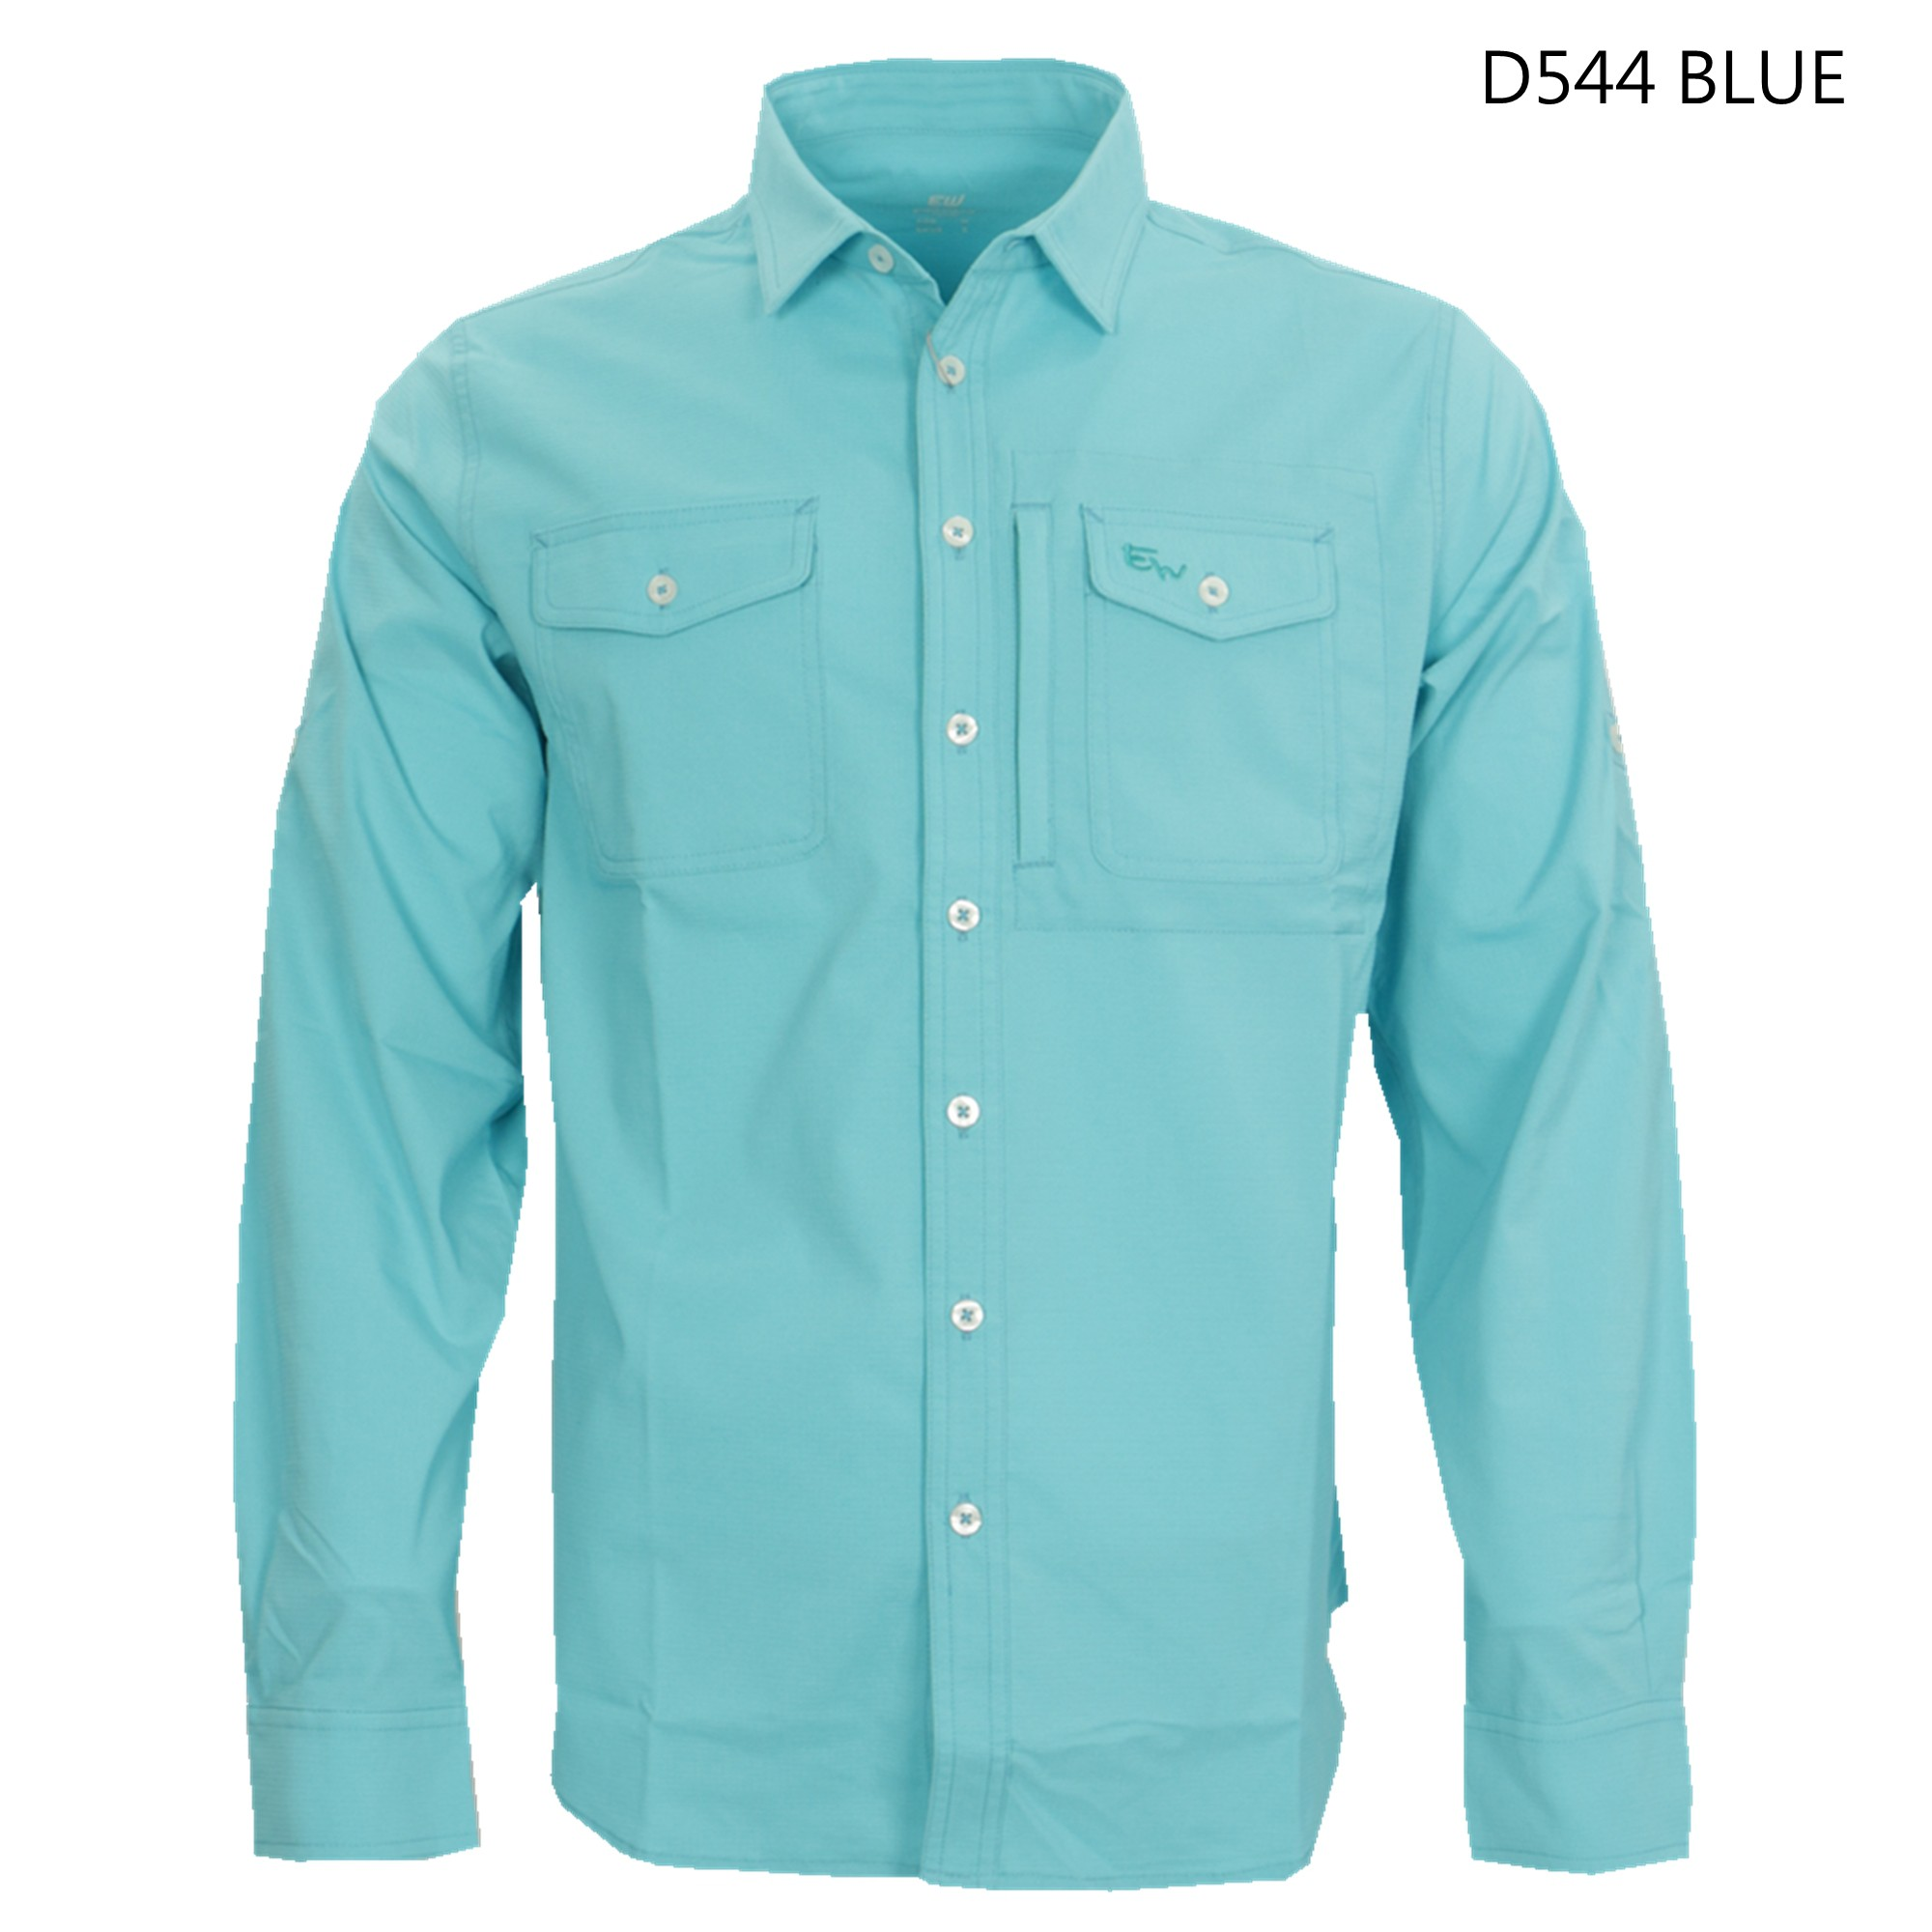 MEN QUICK DRY AND UV PROTECTION Long-Sleeve Shirt